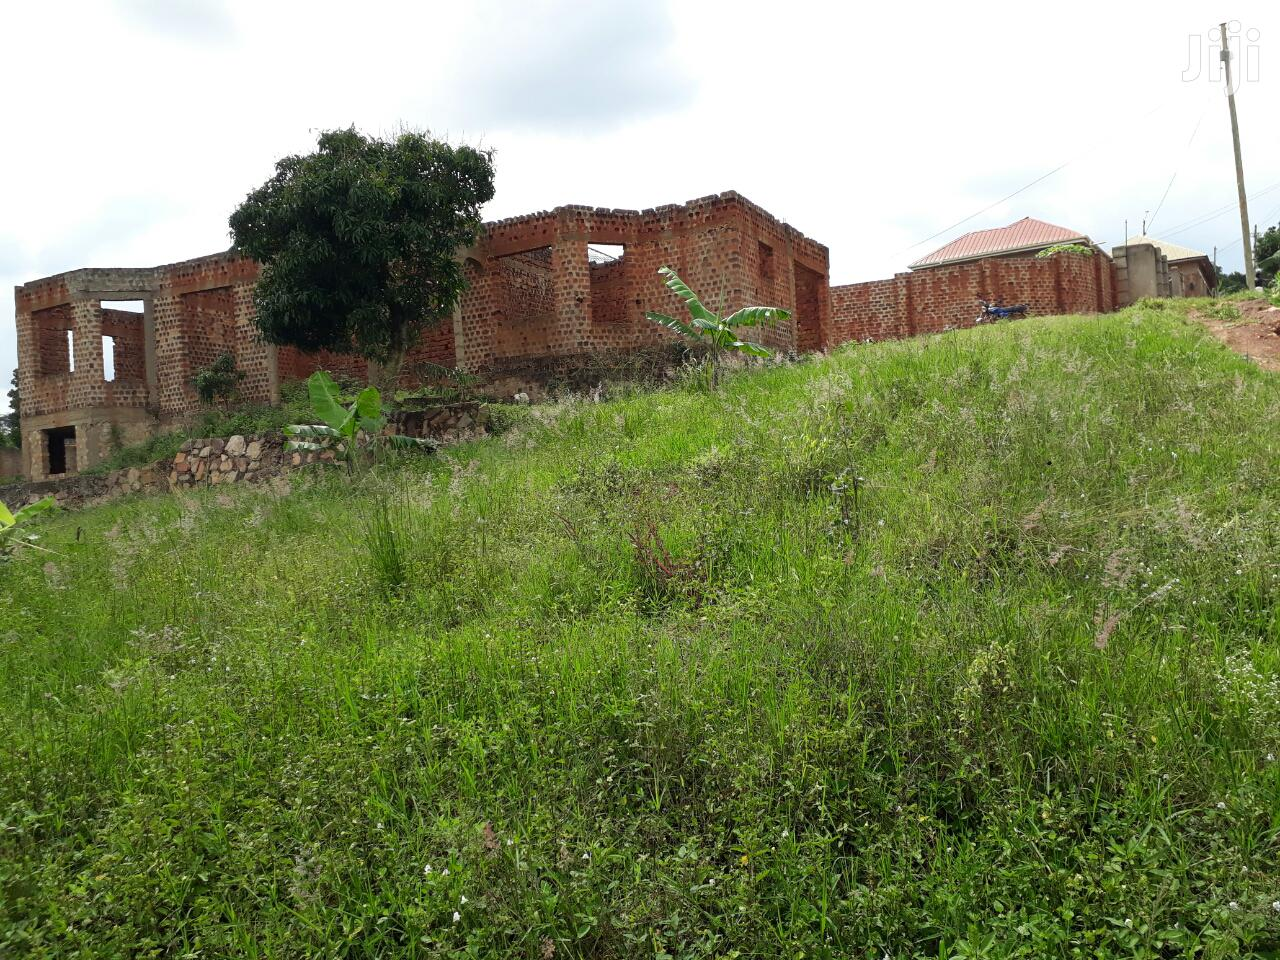 5 Bedrooms House In Salaama Munyonyo Rd Kabuma | Houses & Apartments For Sale for sale in Kampala, Central Region, Uganda